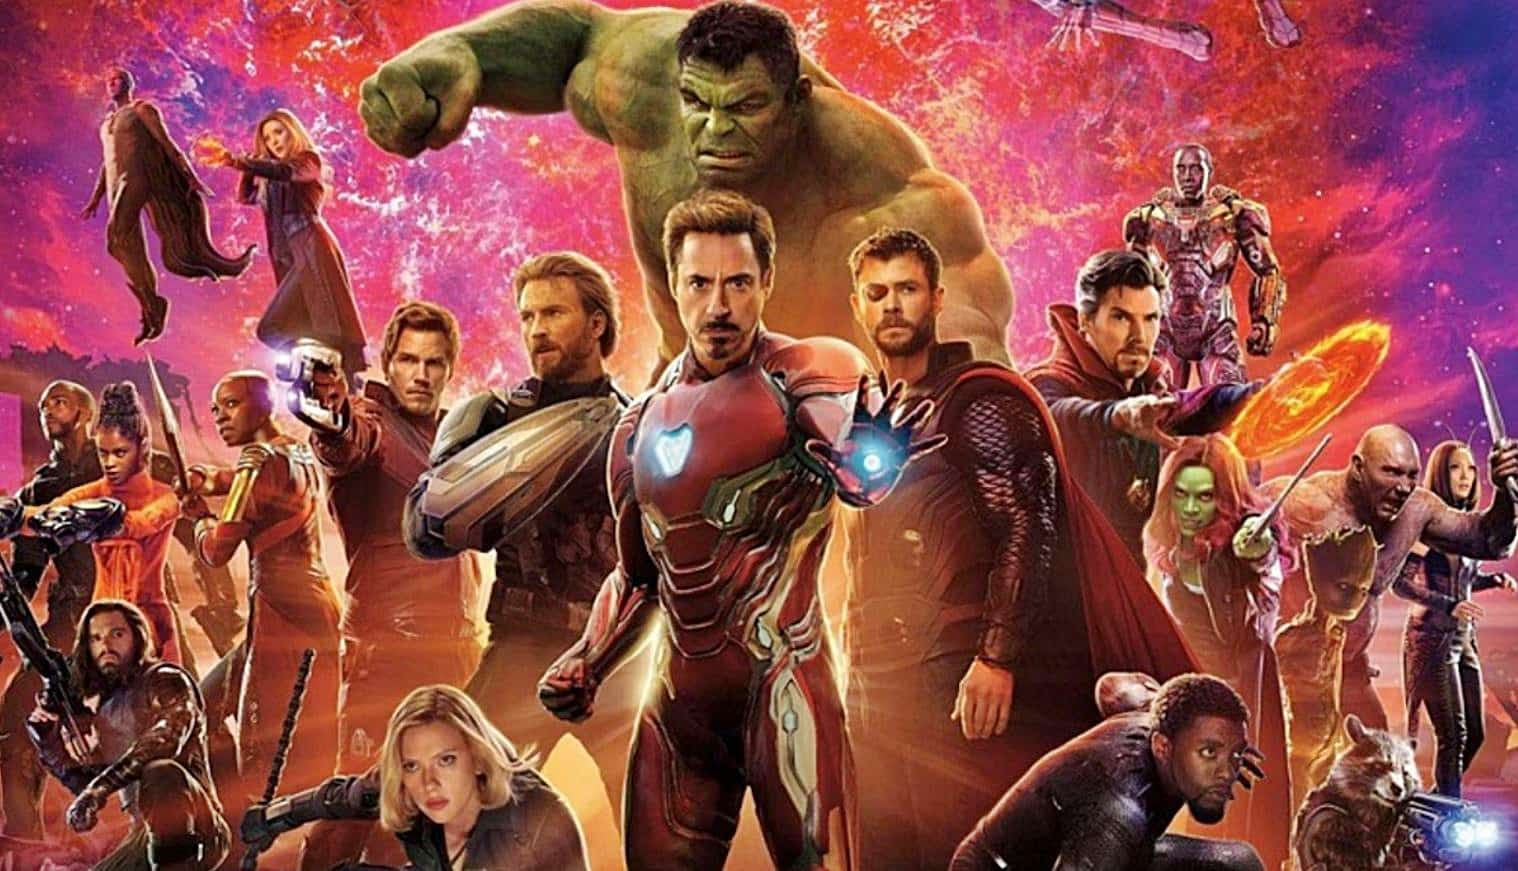 The Avengers: 'Avengers 4' Trailer WILL Reportedly Be Here Before The